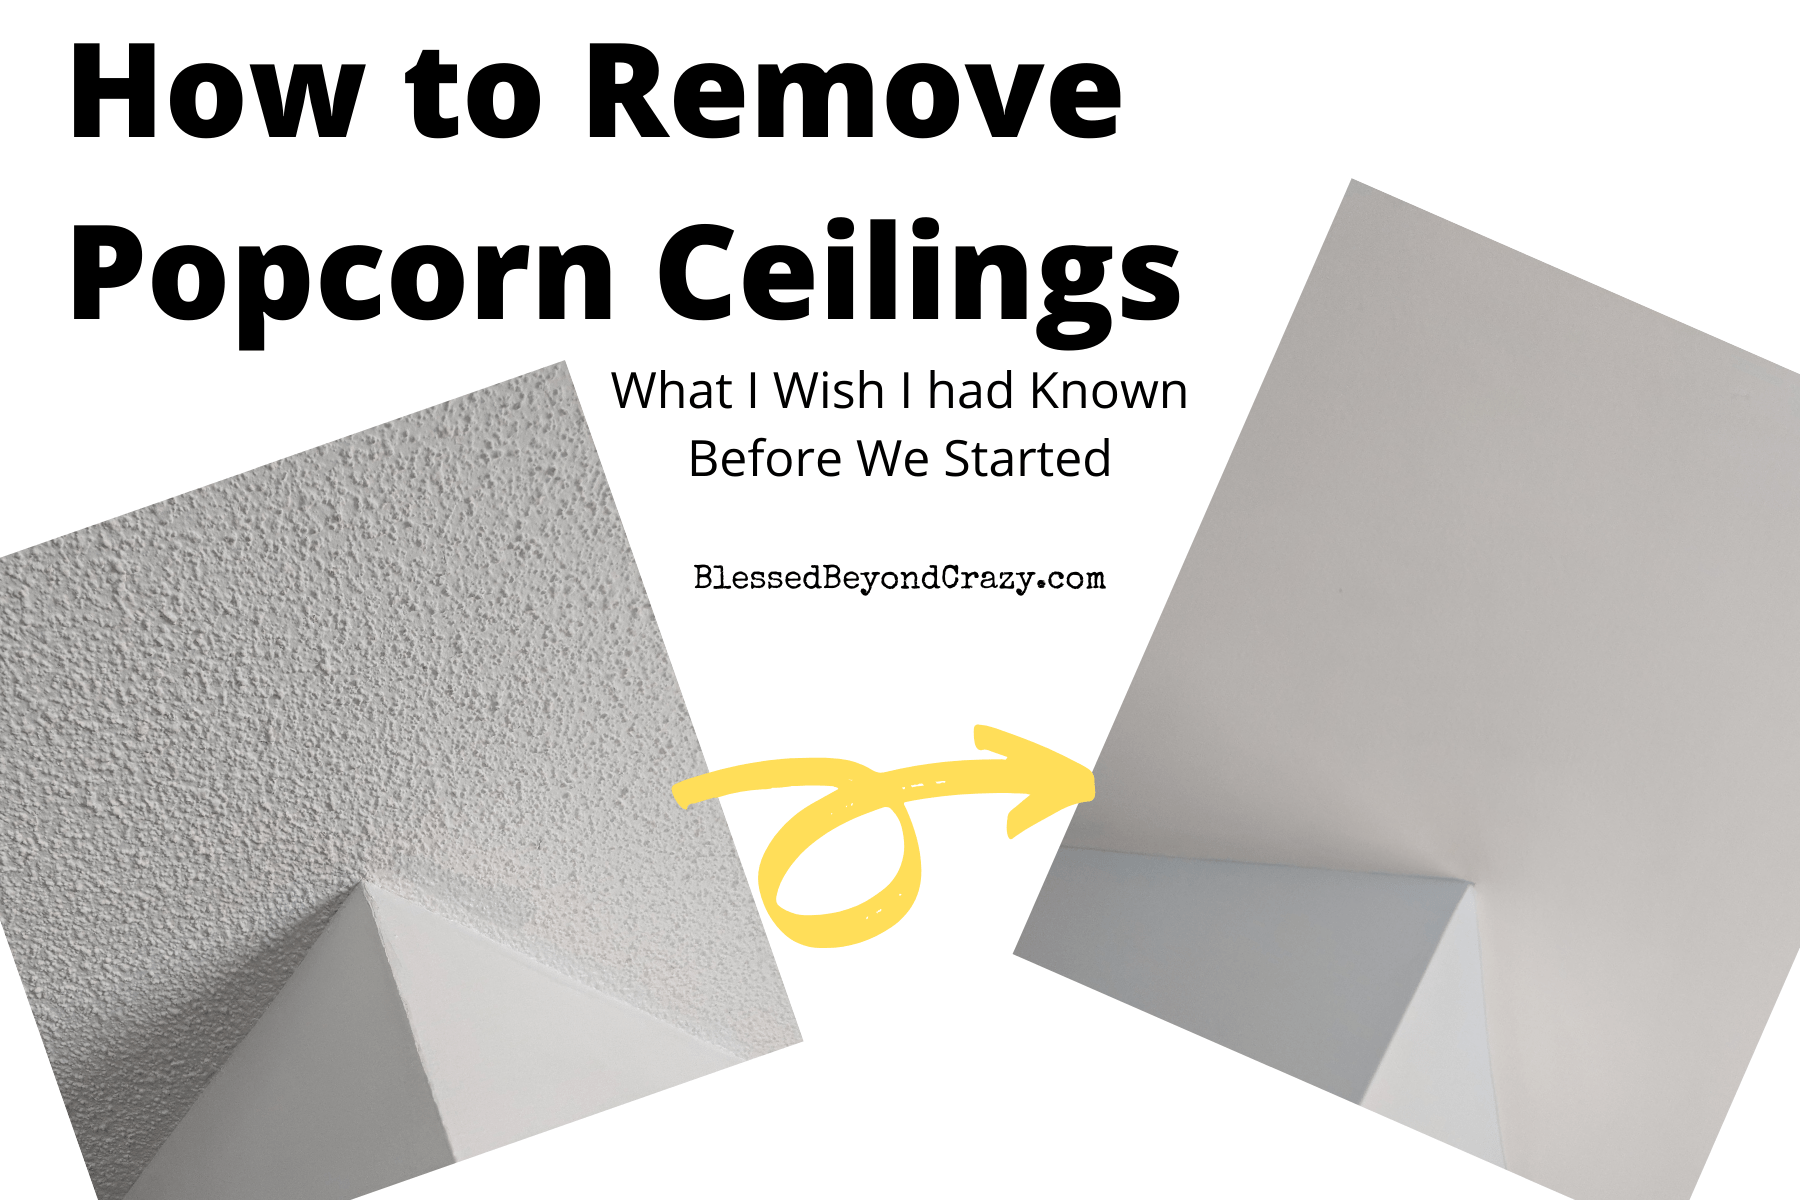 How to Remove Popcorn Ceilings; What to Know Before You ...